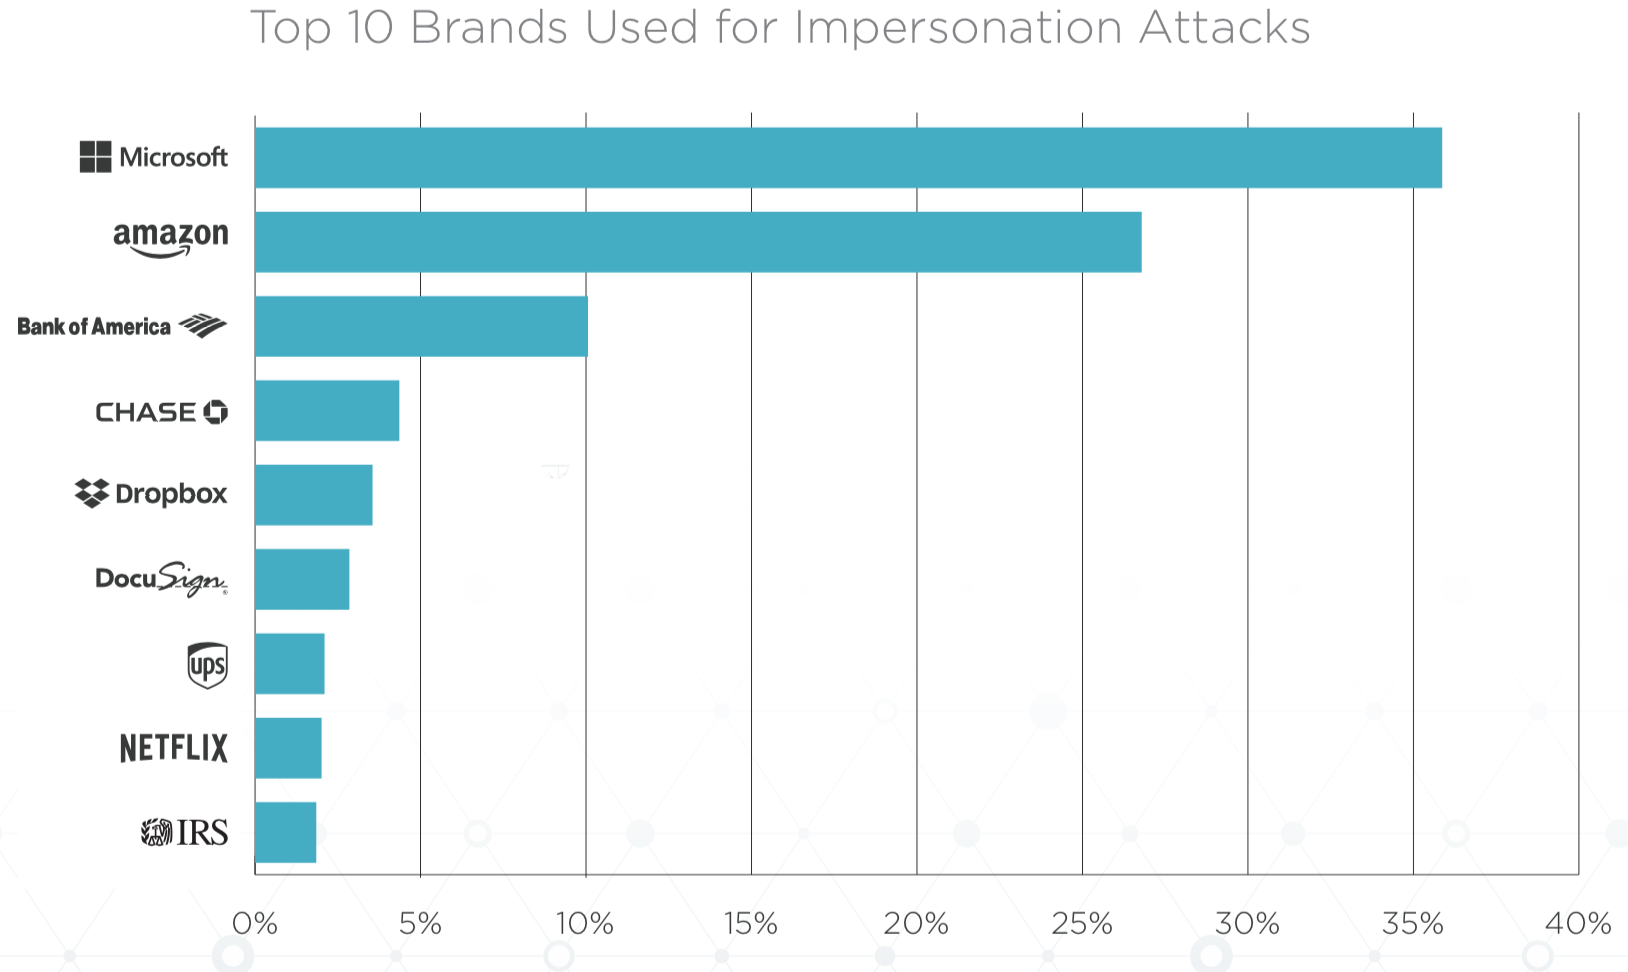 brands-impersonation-attacks-2019